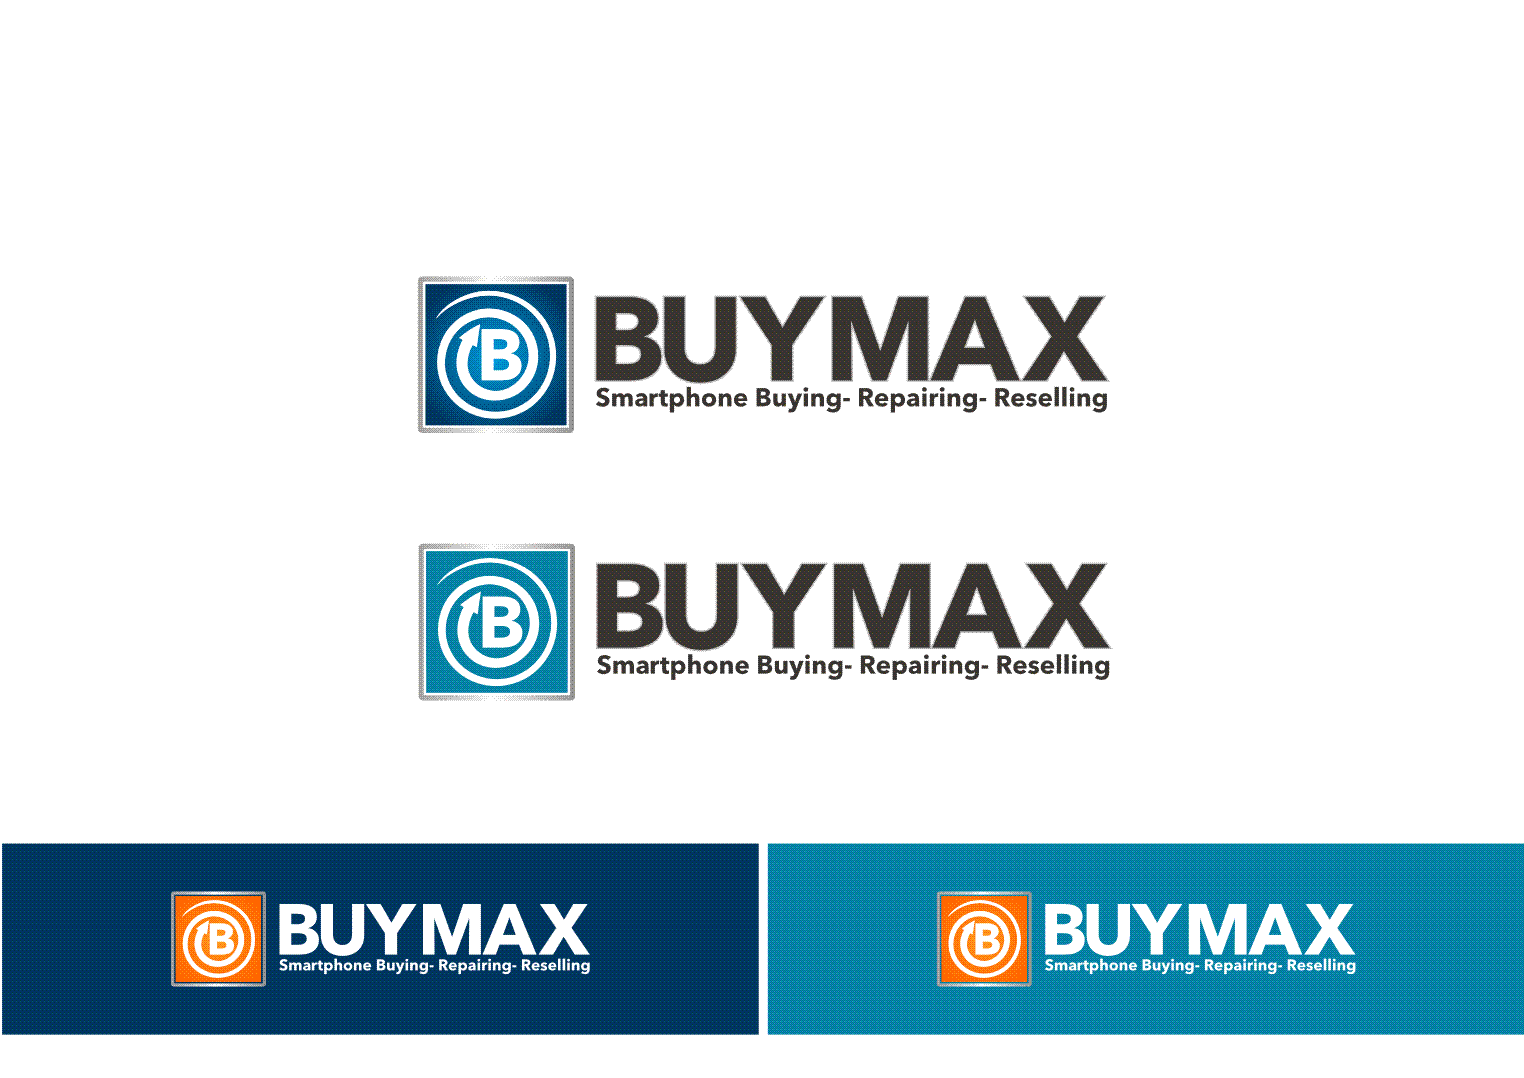 Help BuyMax with a new logo